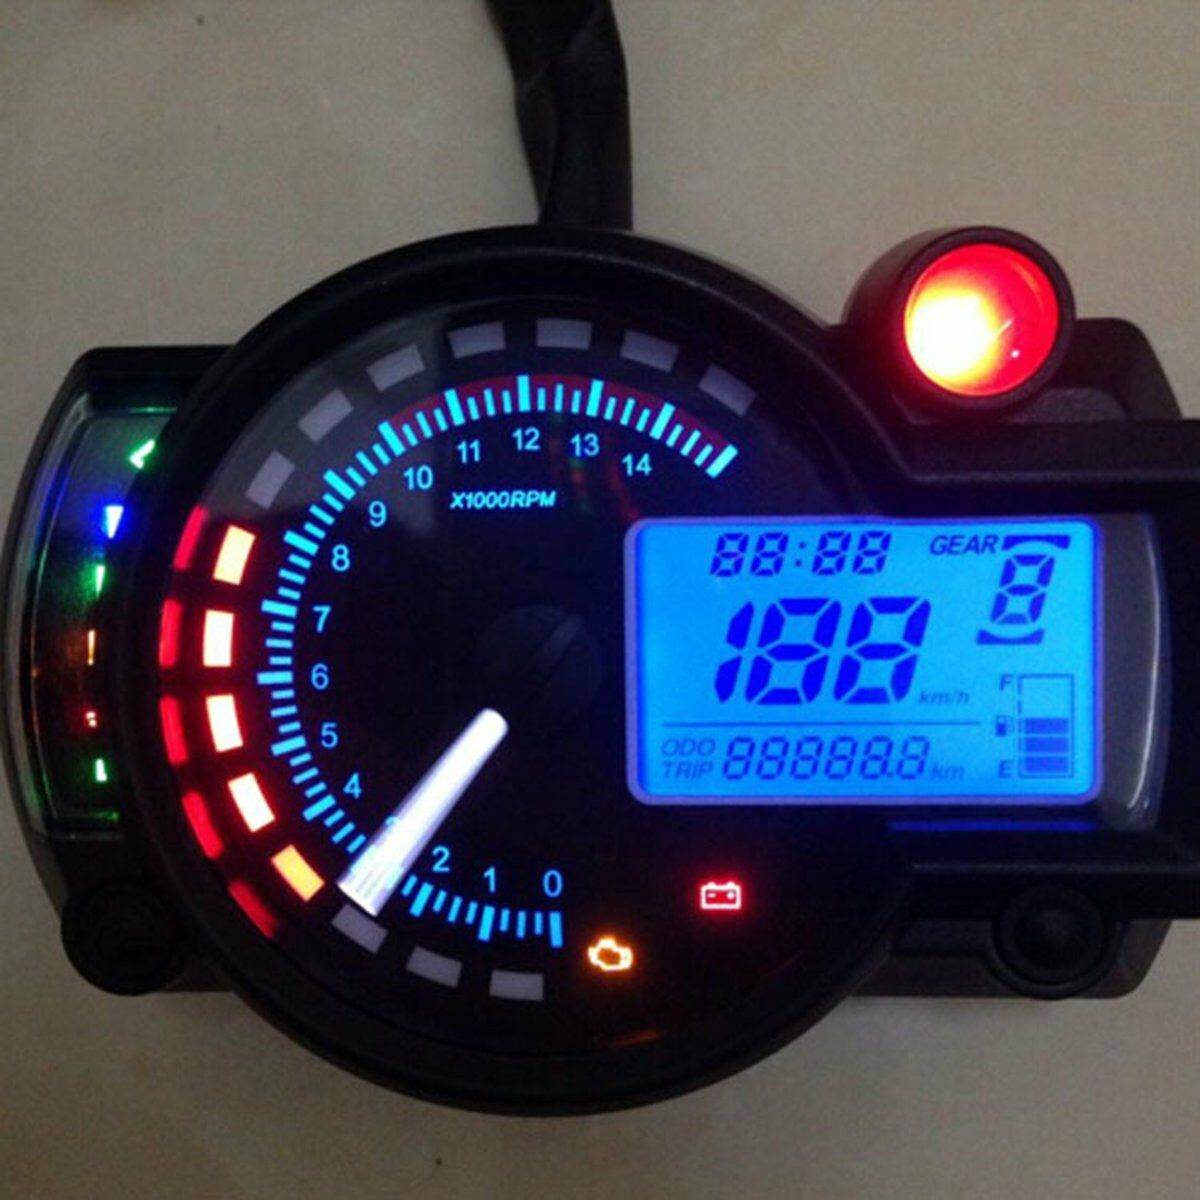 Universal 7 color display Motorcycle Digital Speedometer Multifunction LCD digita Tachometer Odometer Gauge LED image